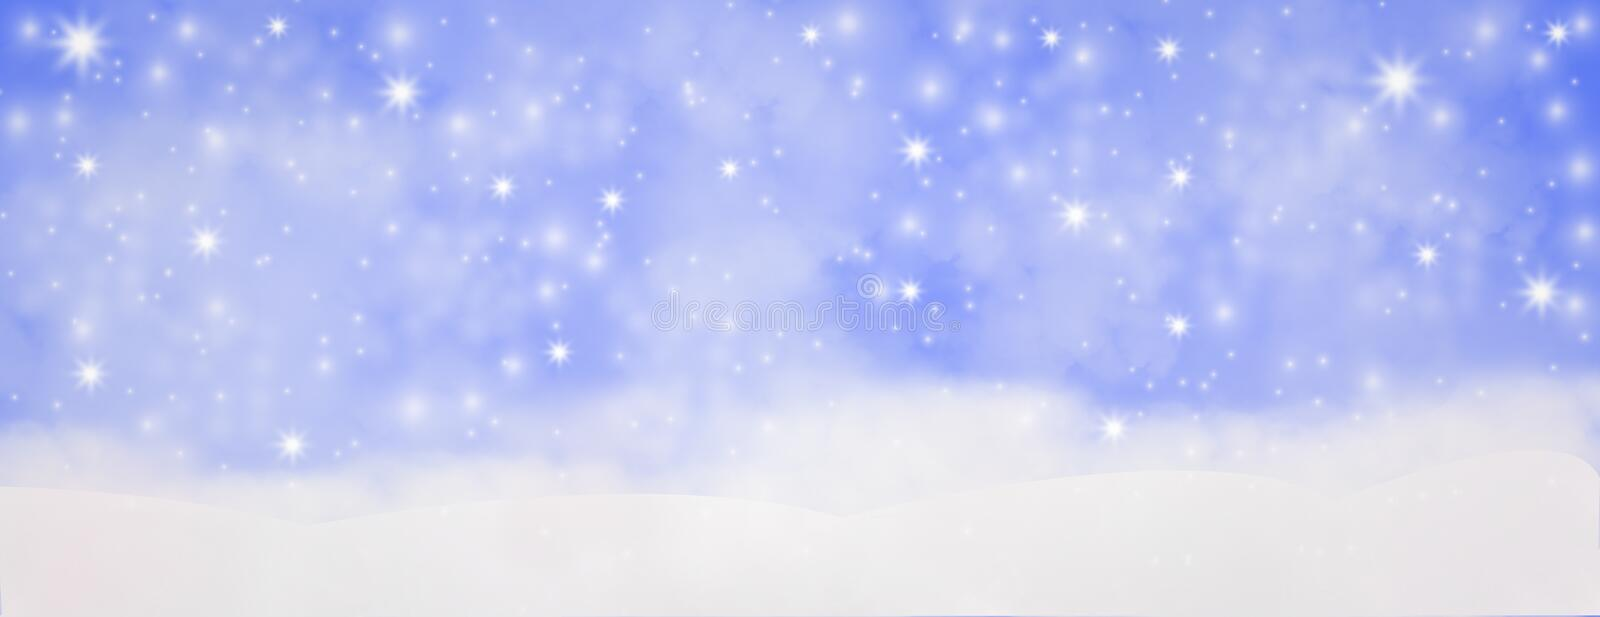 Winter outdoor with falling snowflakes, Panoramic web banner horizontal, with snow background, bokeh And glittering, Concept of c. Elebration and beauty of be stock illustration